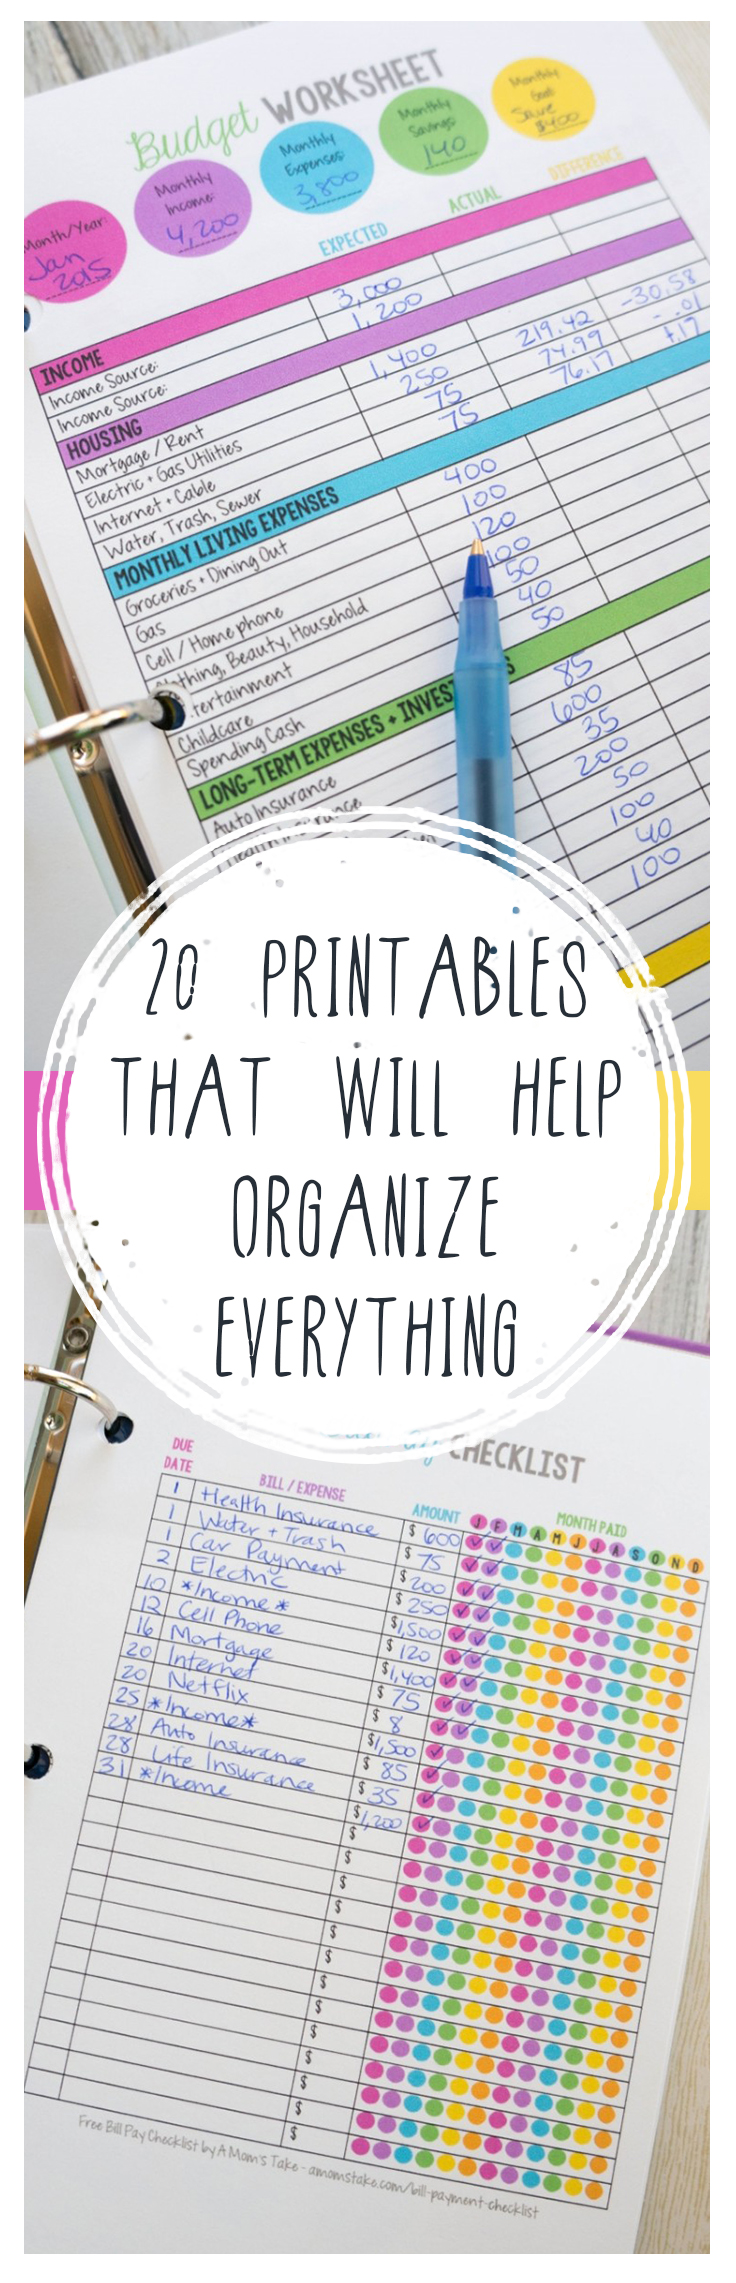 Printables, free printables, popular pin, organization, organization, cleaning tips, cleaning tricks, cleaning hacks, cleaning. verything